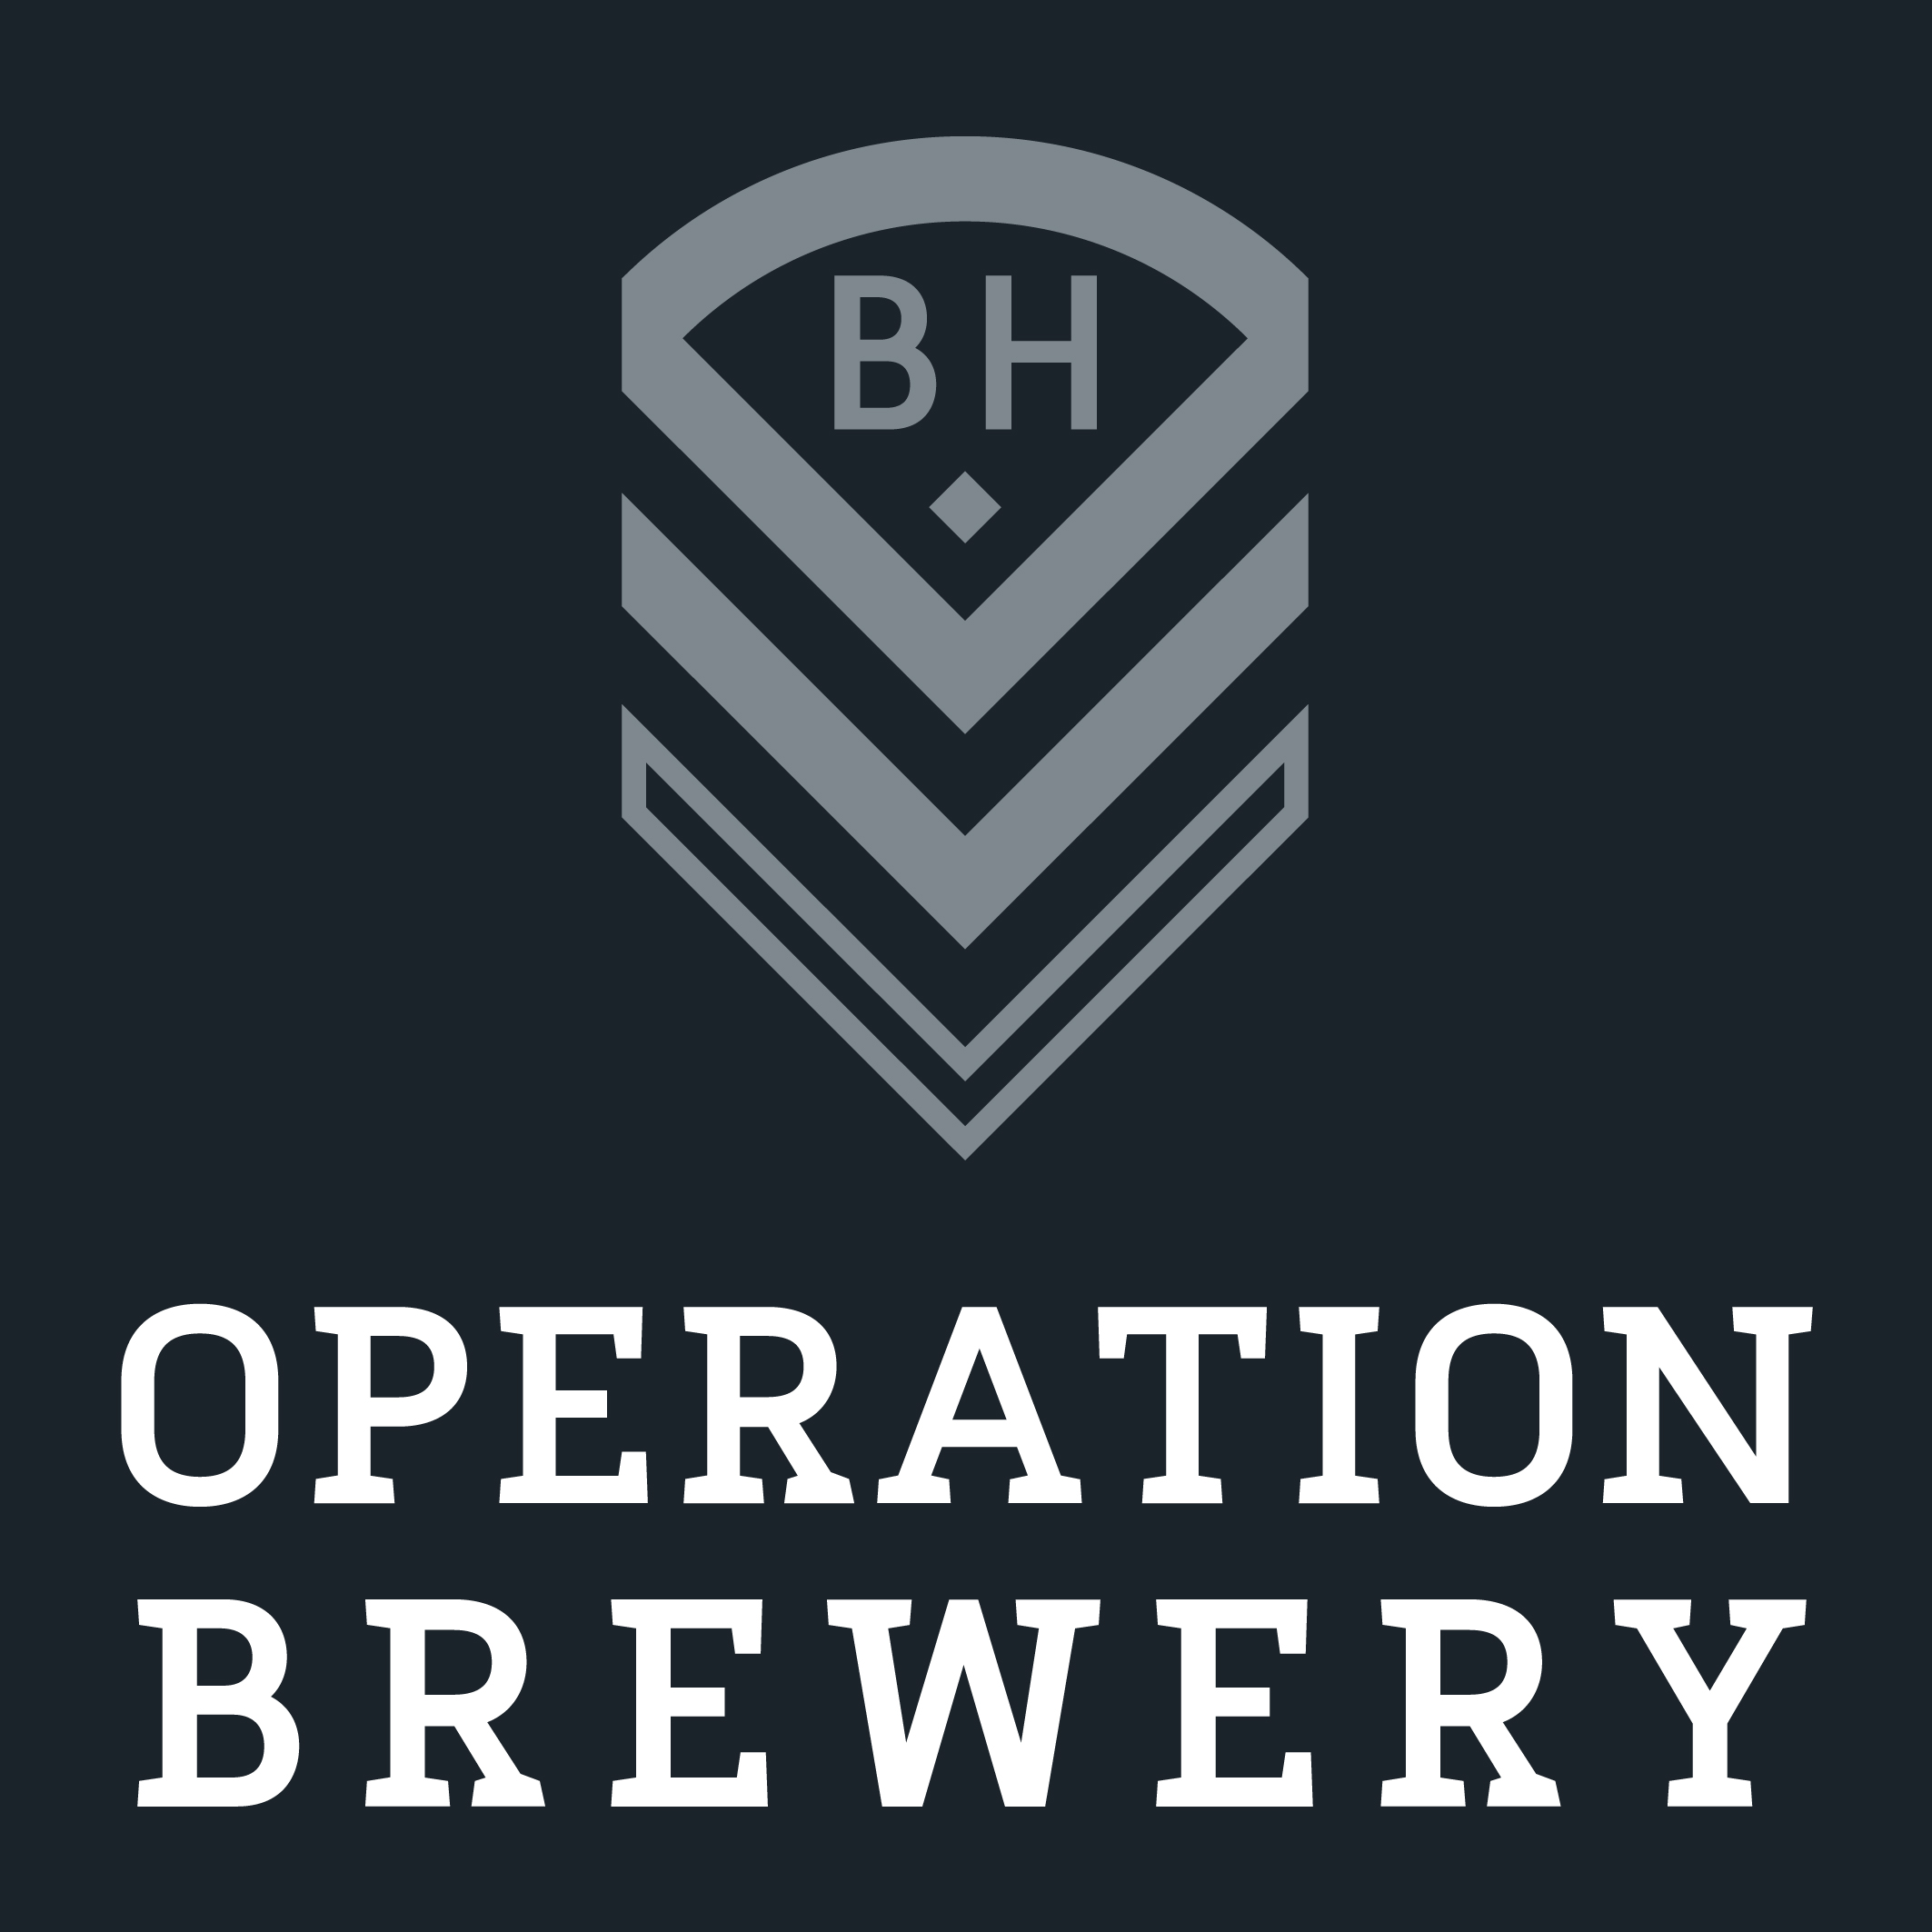 Operation Brewery by Black Hops Brewing